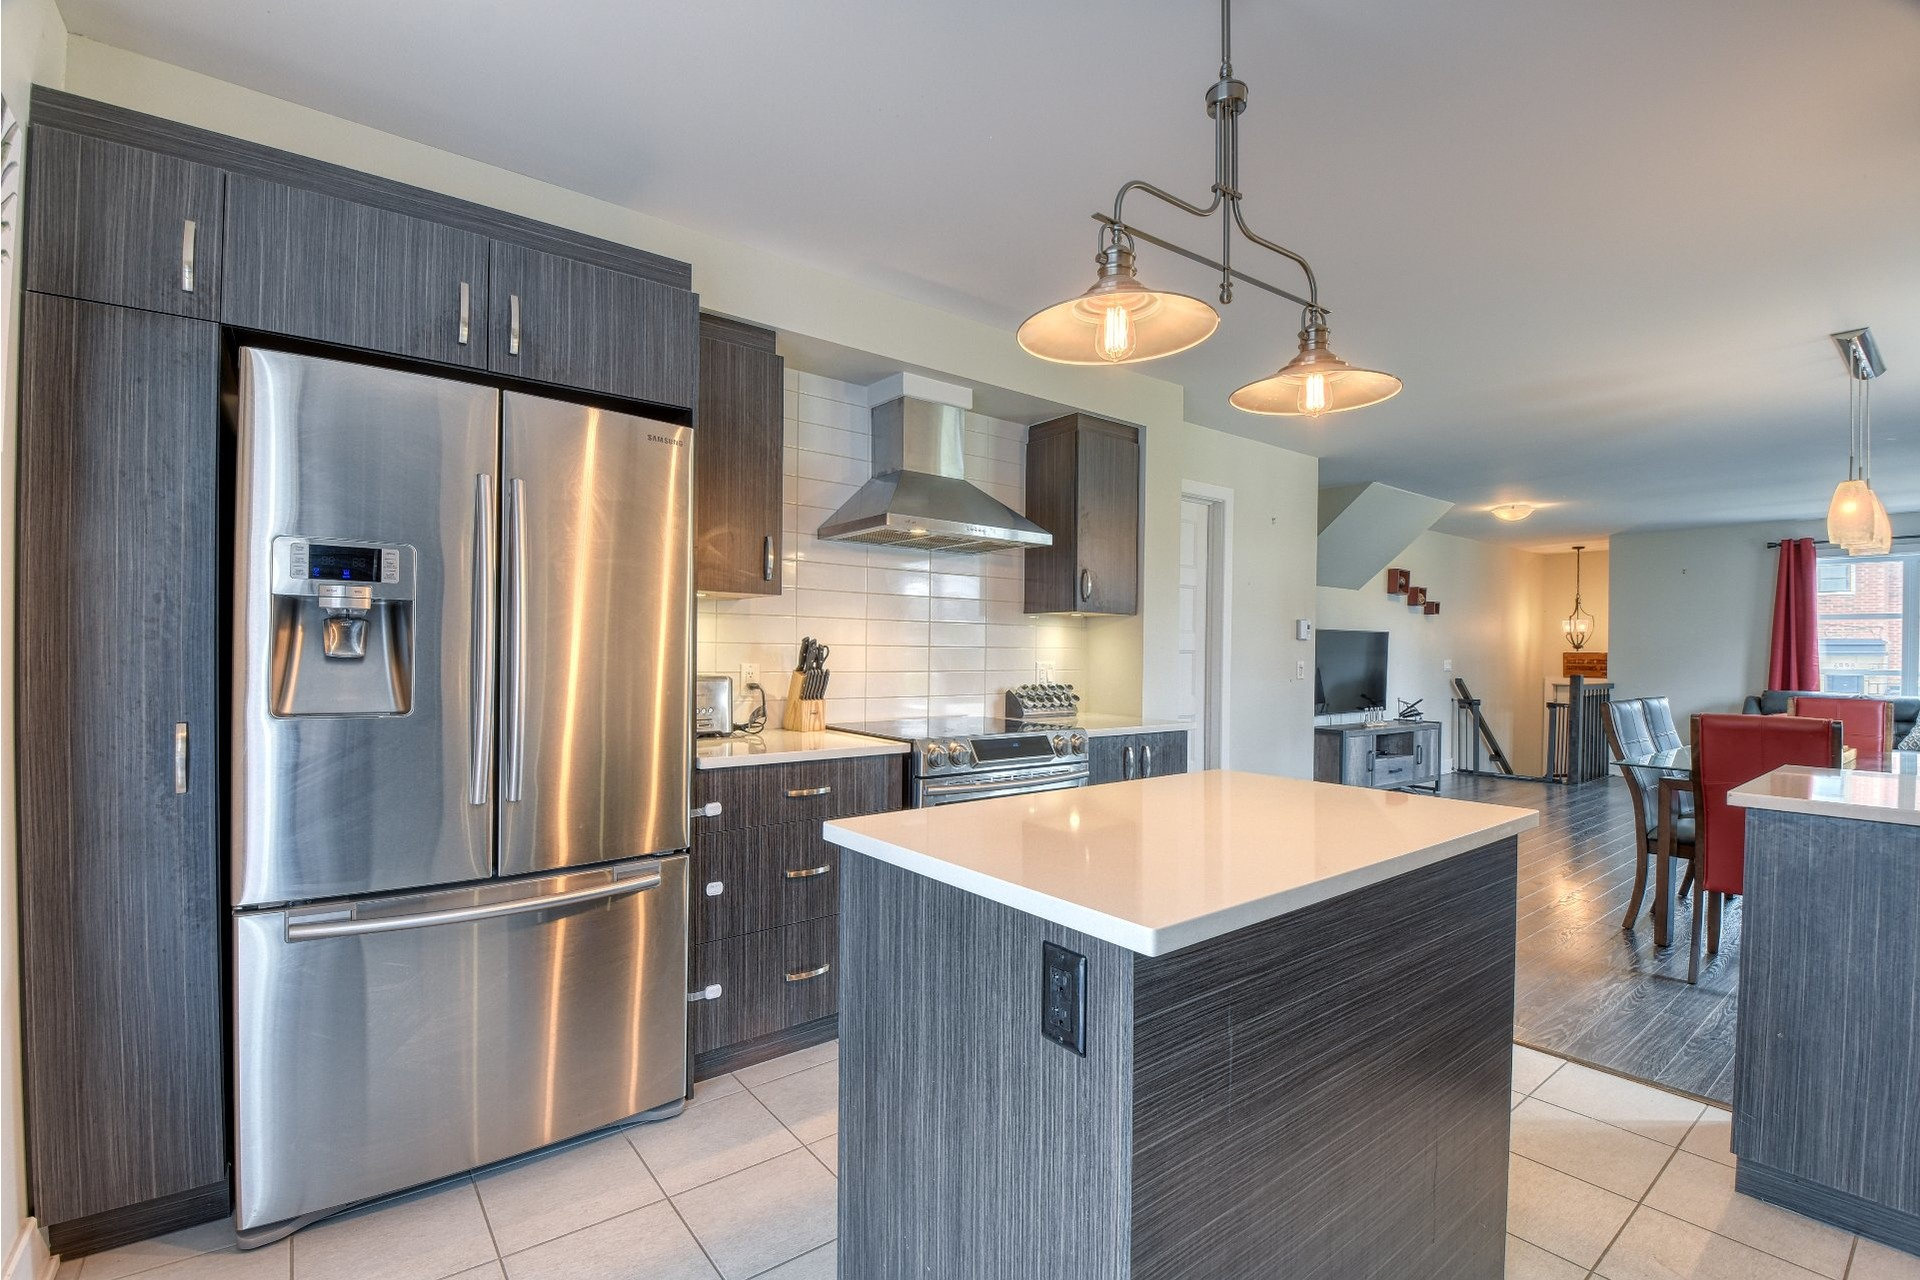 image 11 - Apartment For sale Duvernay Laval  - 6 rooms